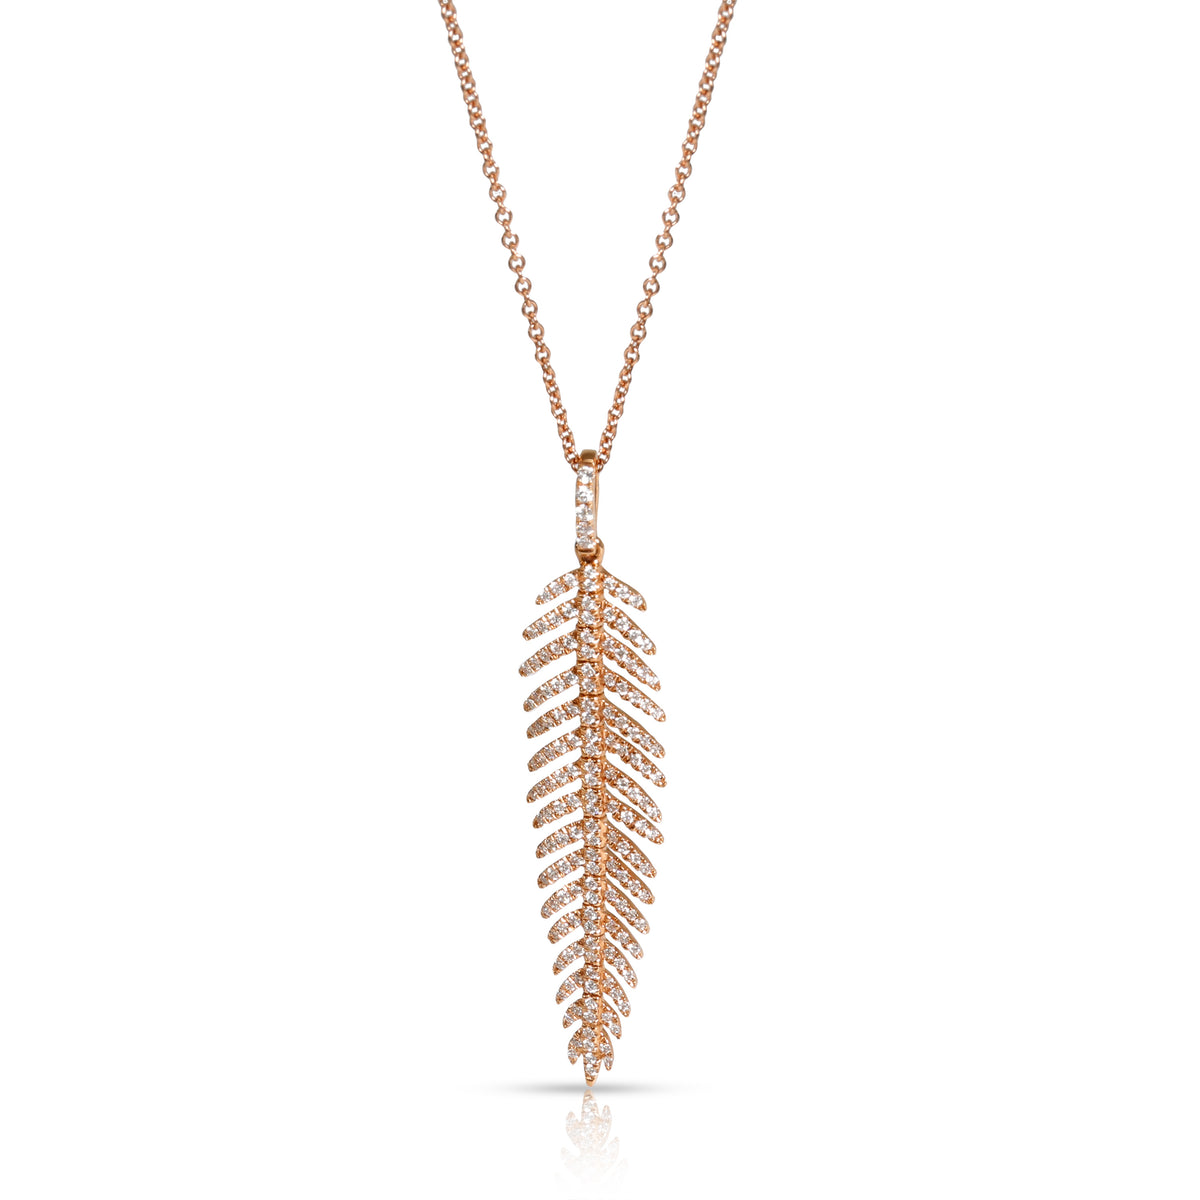 Nicole Rose Articulated Feather Diamond Necklace in 18K Rose Gold 0.44 CTW